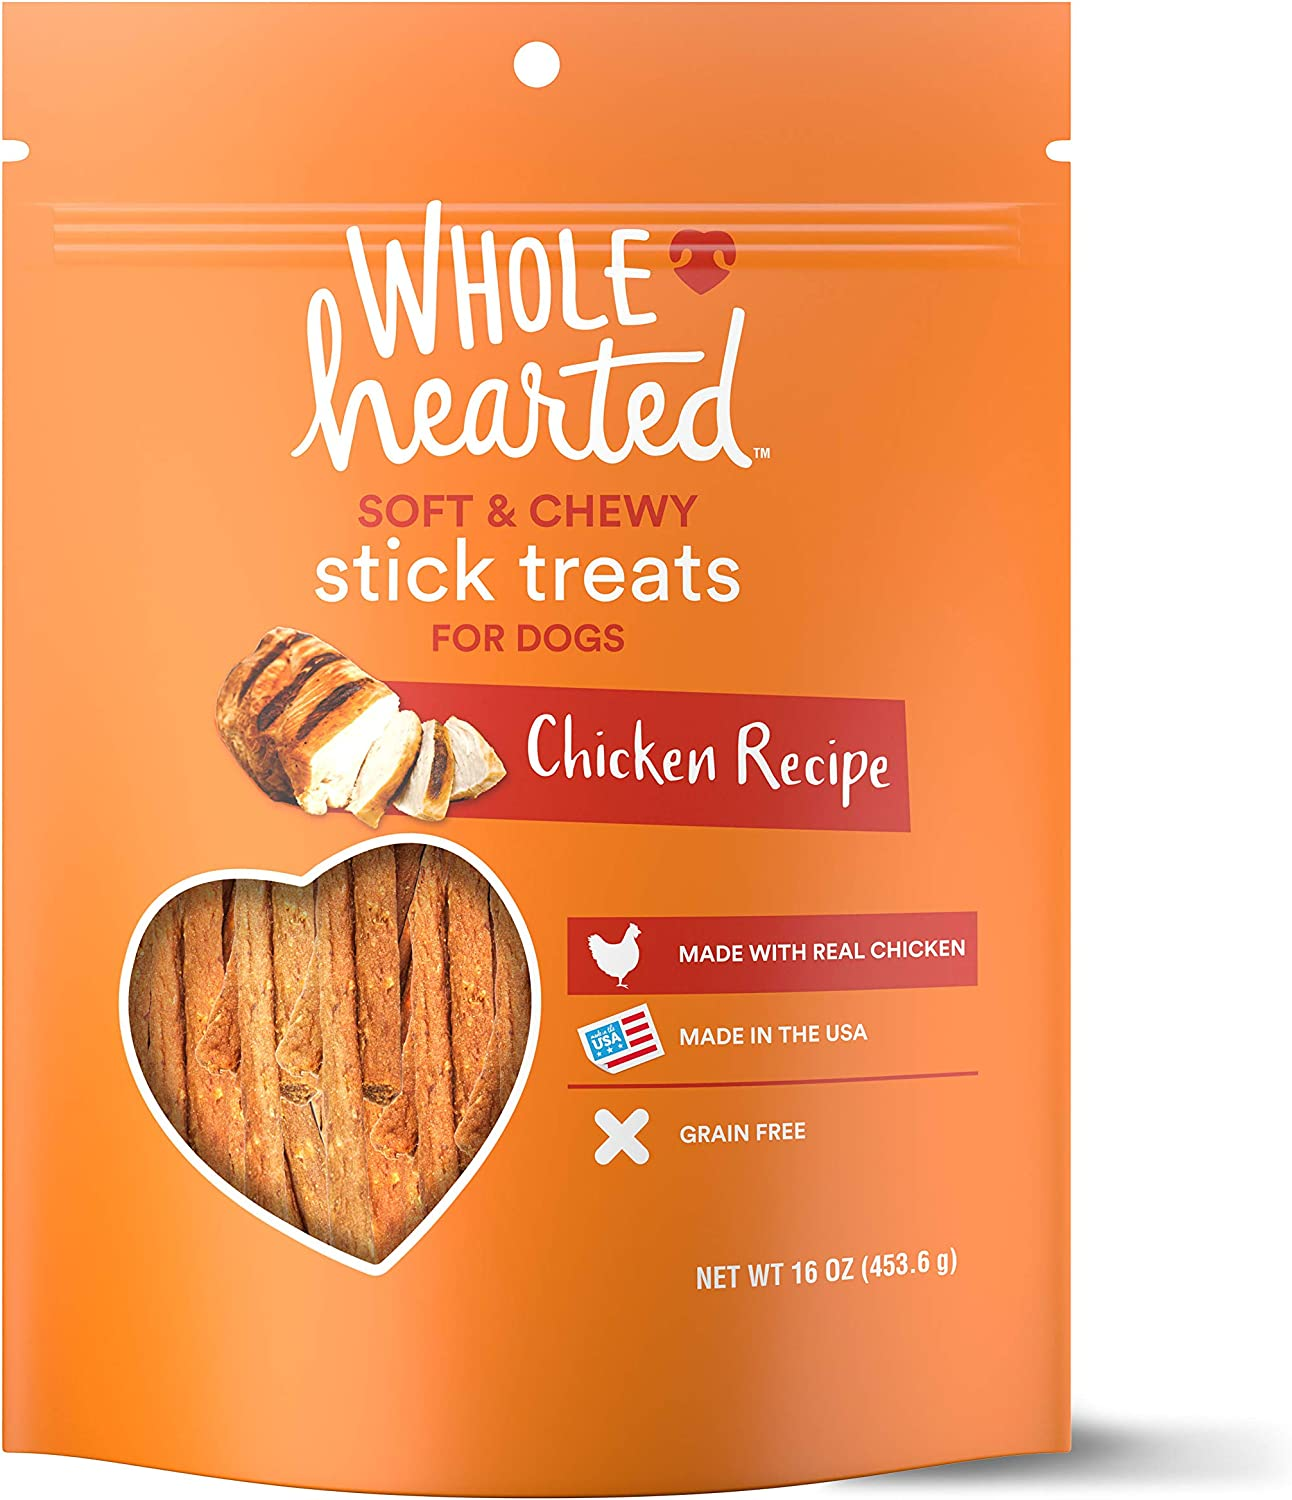 Petco Brand - WholeHearted Grain Free Soft and Chewy Chicken Recipe Dog Stick Treats, 16 oz